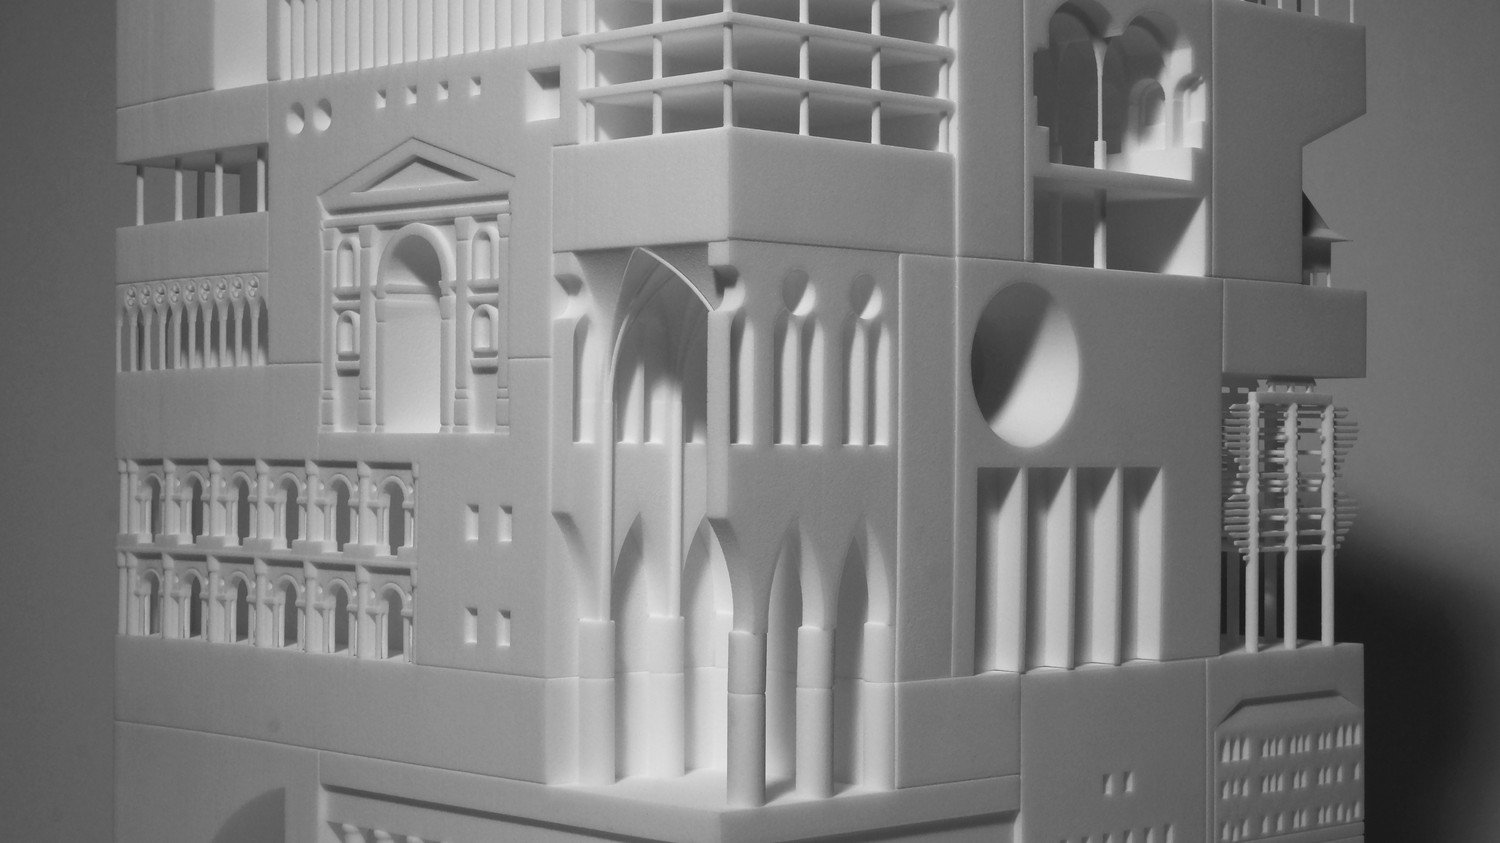 Japanese Architect Fits More Than 30 Iconic Buildings in One 3D Printed Object | All3DP